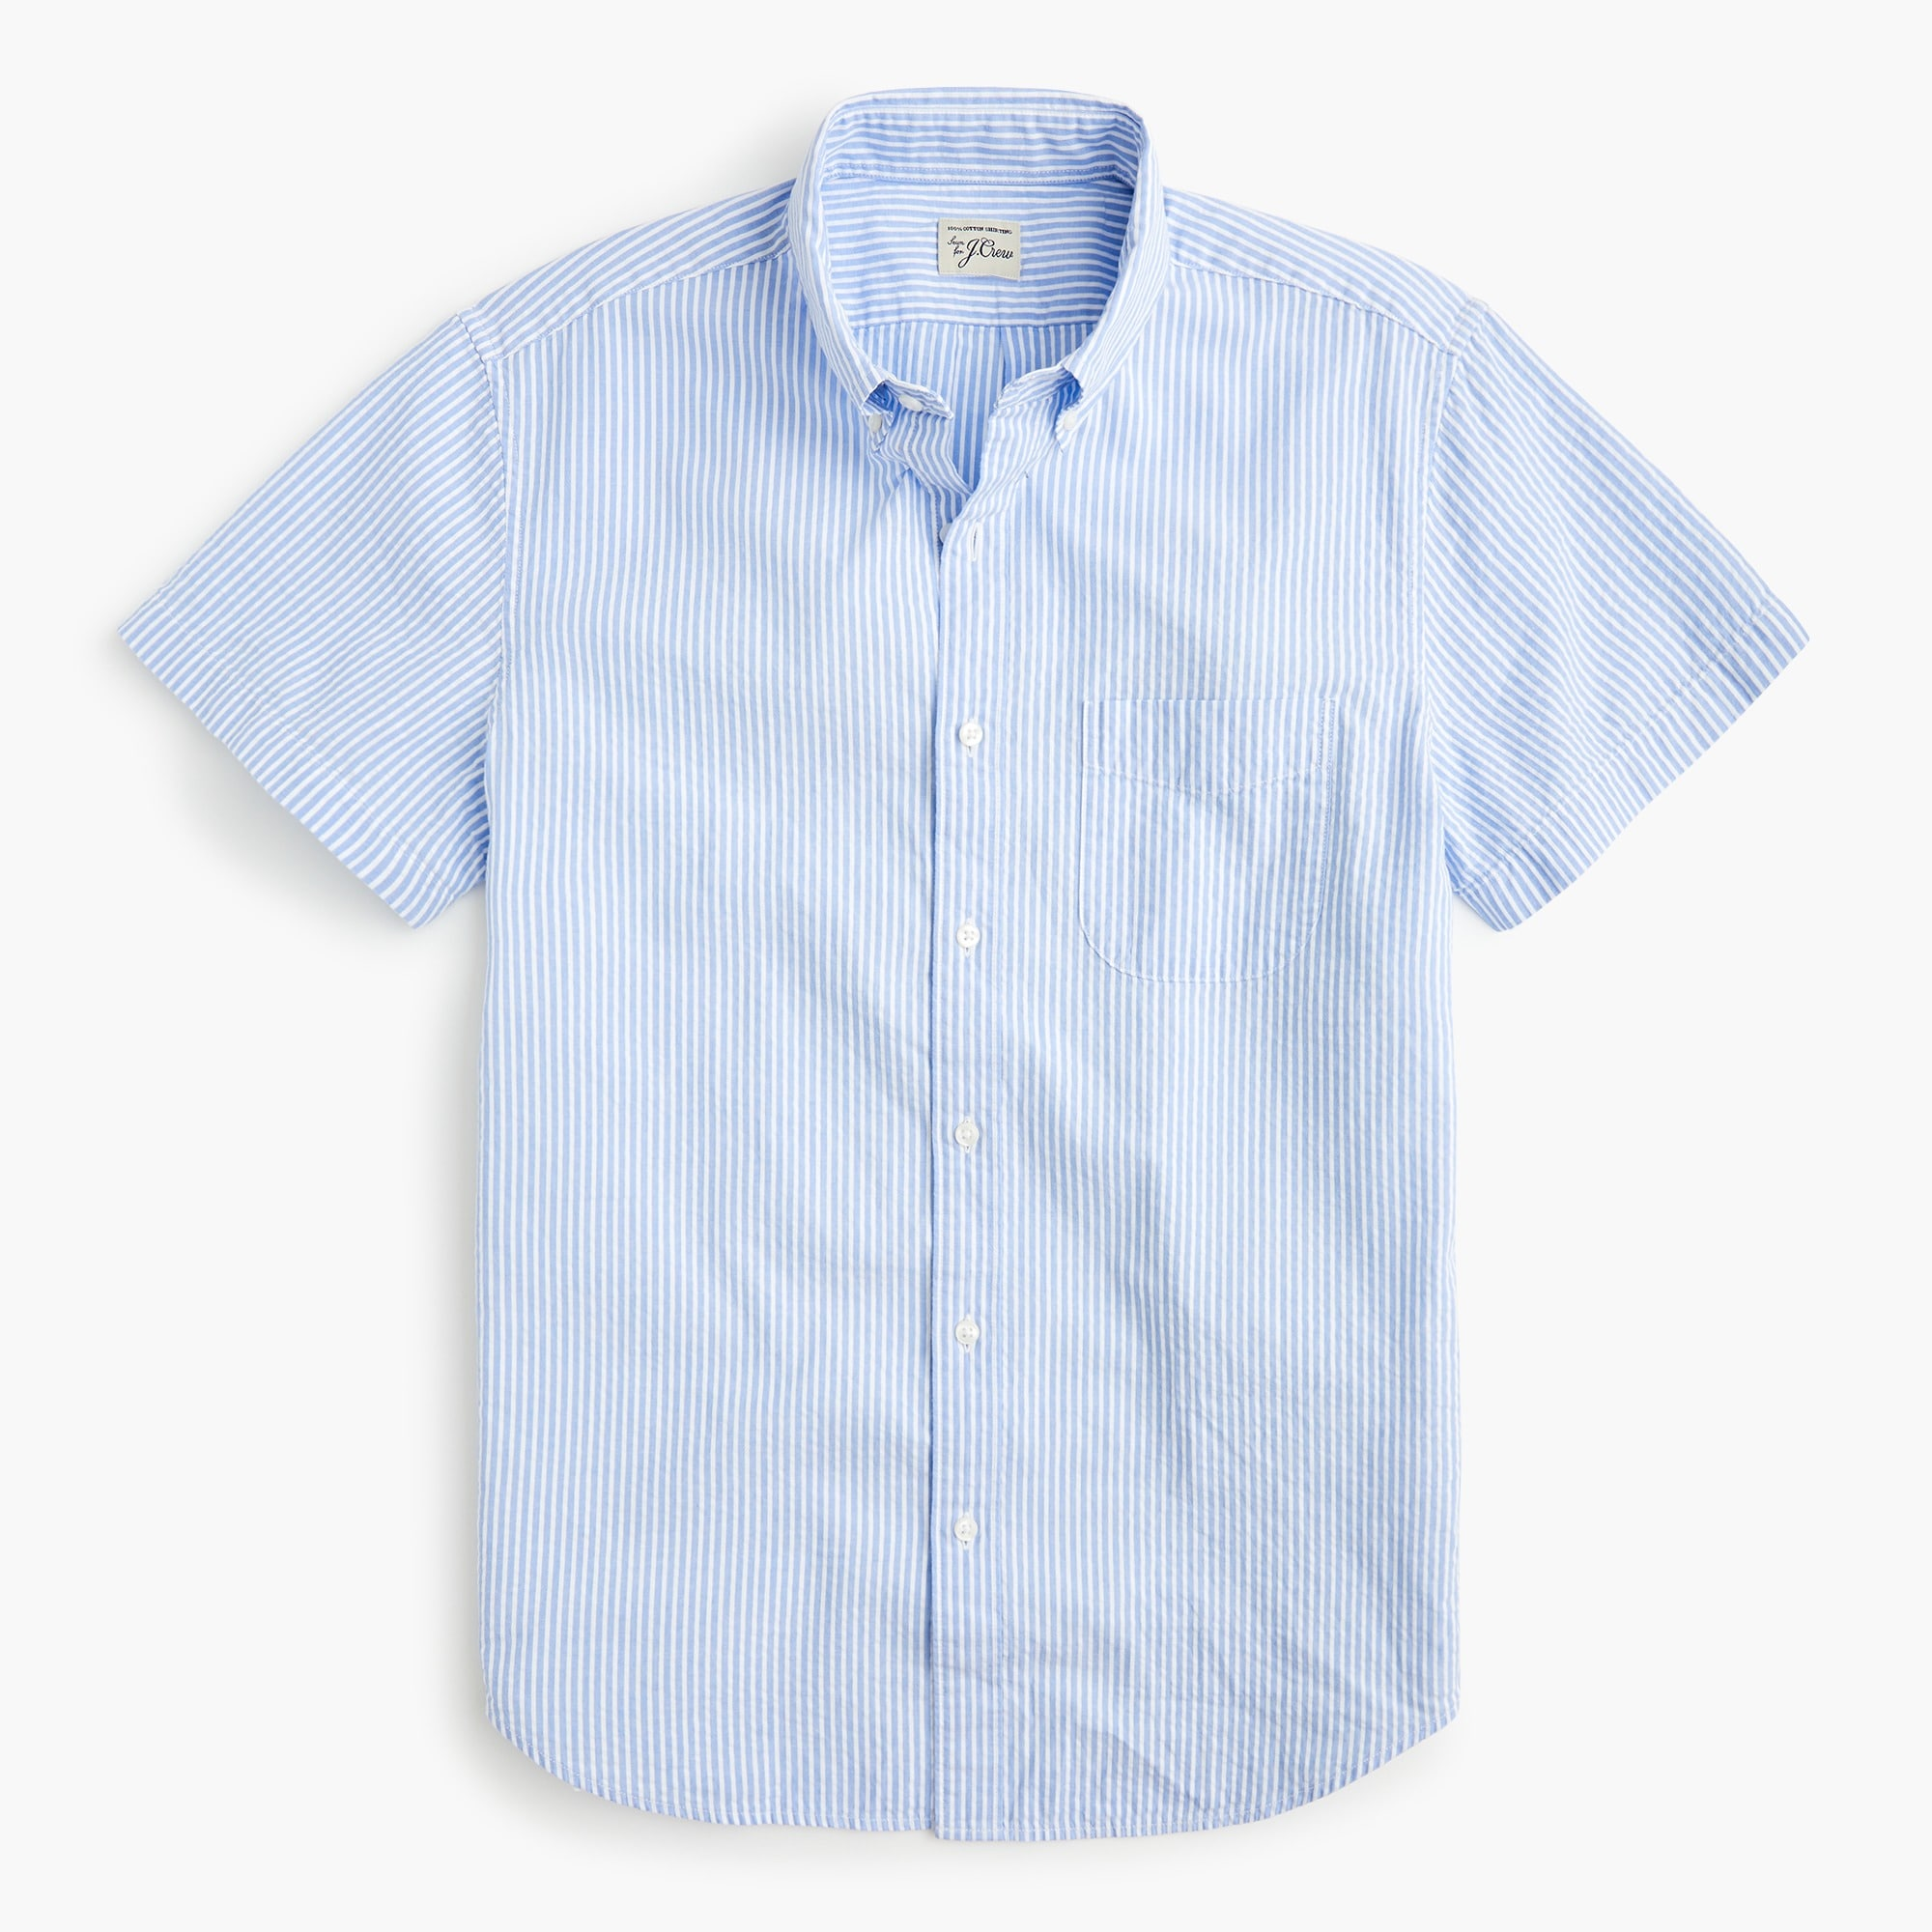 mens Short-sleeve seersucker shirt in striped organic cotton